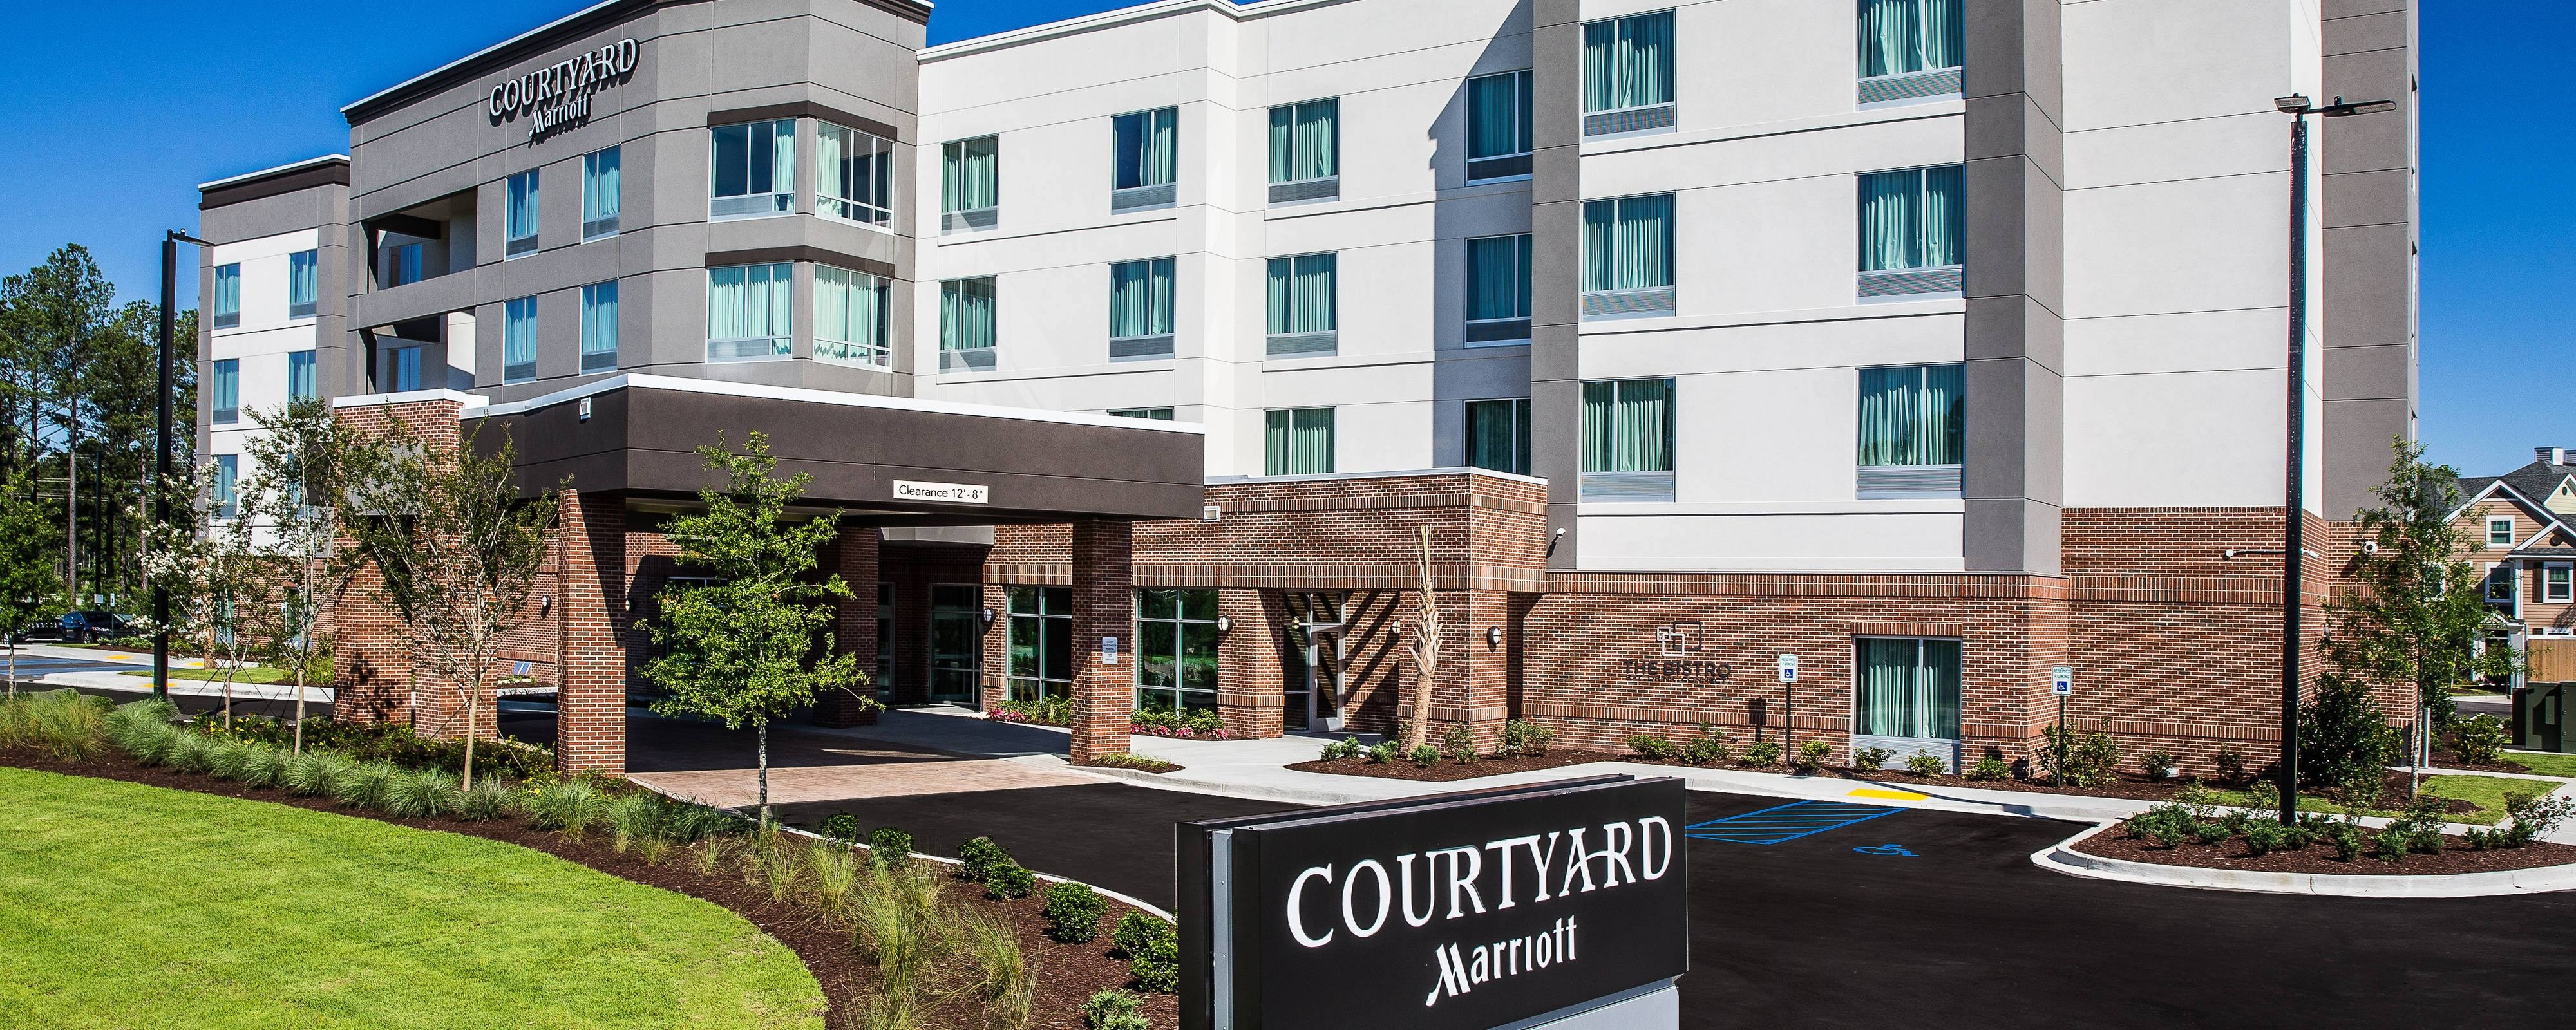 Hotel in Cayce, SC, with Free Wi-Fi | Courtyard